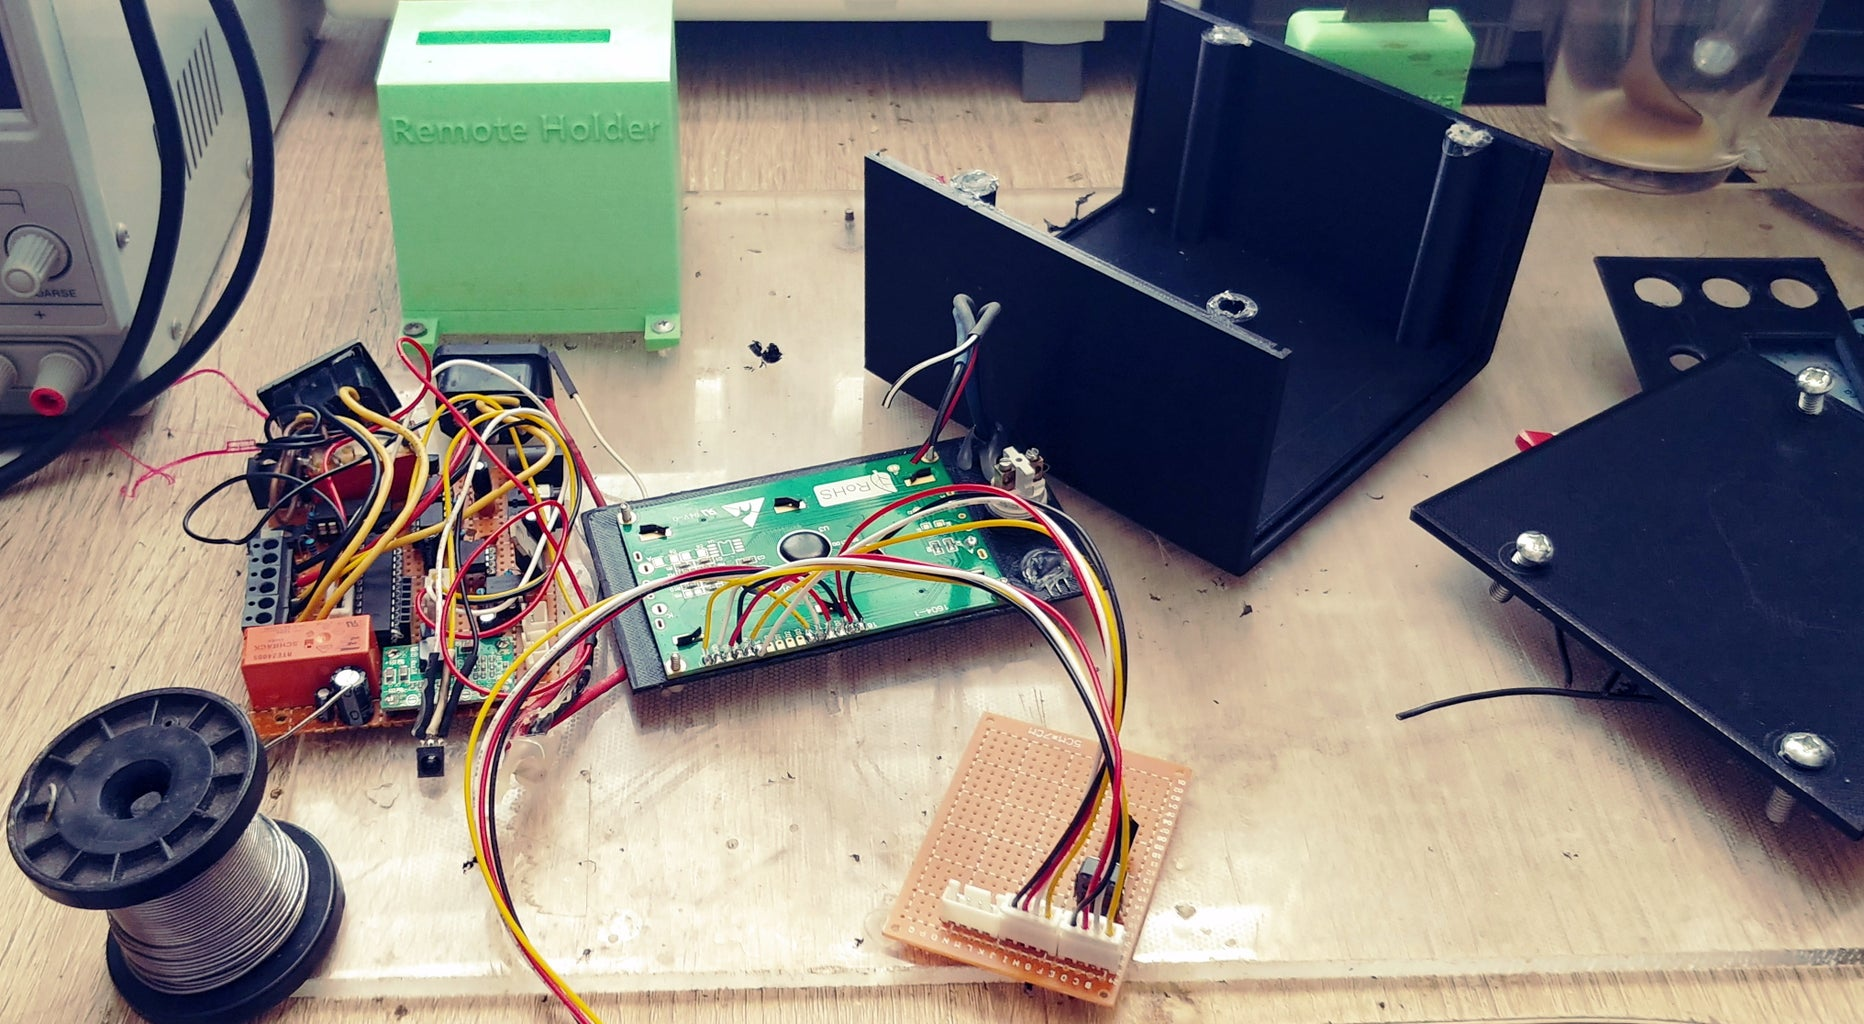 Assembly and Soldering